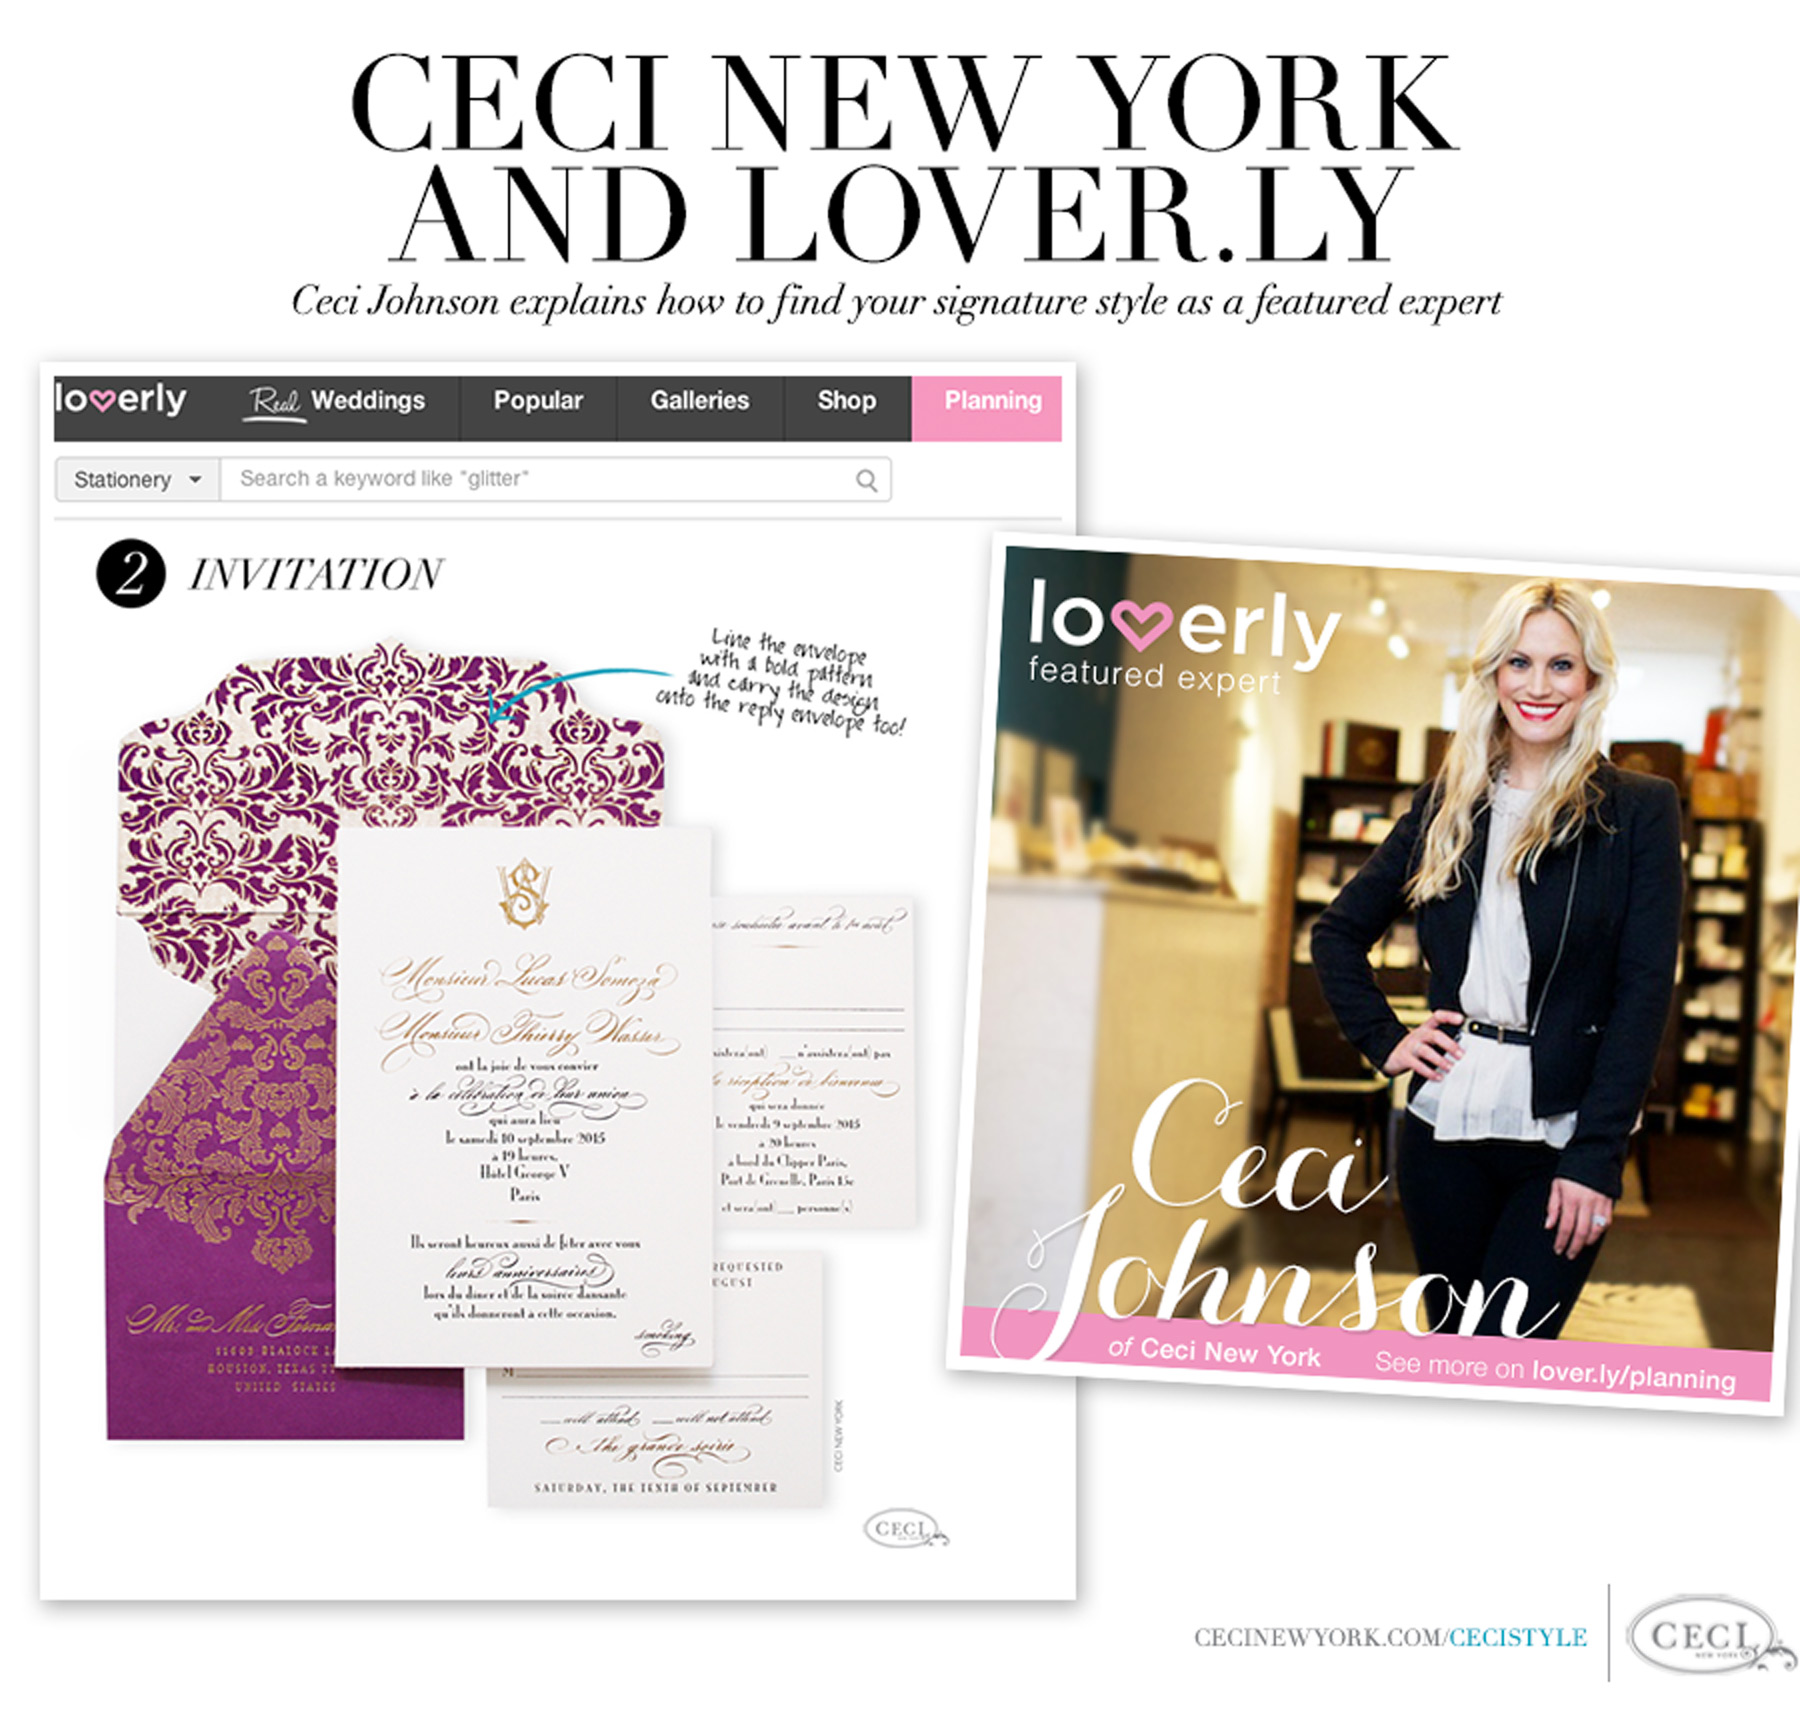 Ceci New York and Lover.ly - Ceci Johnson explains how to find your signature style as a featured expert